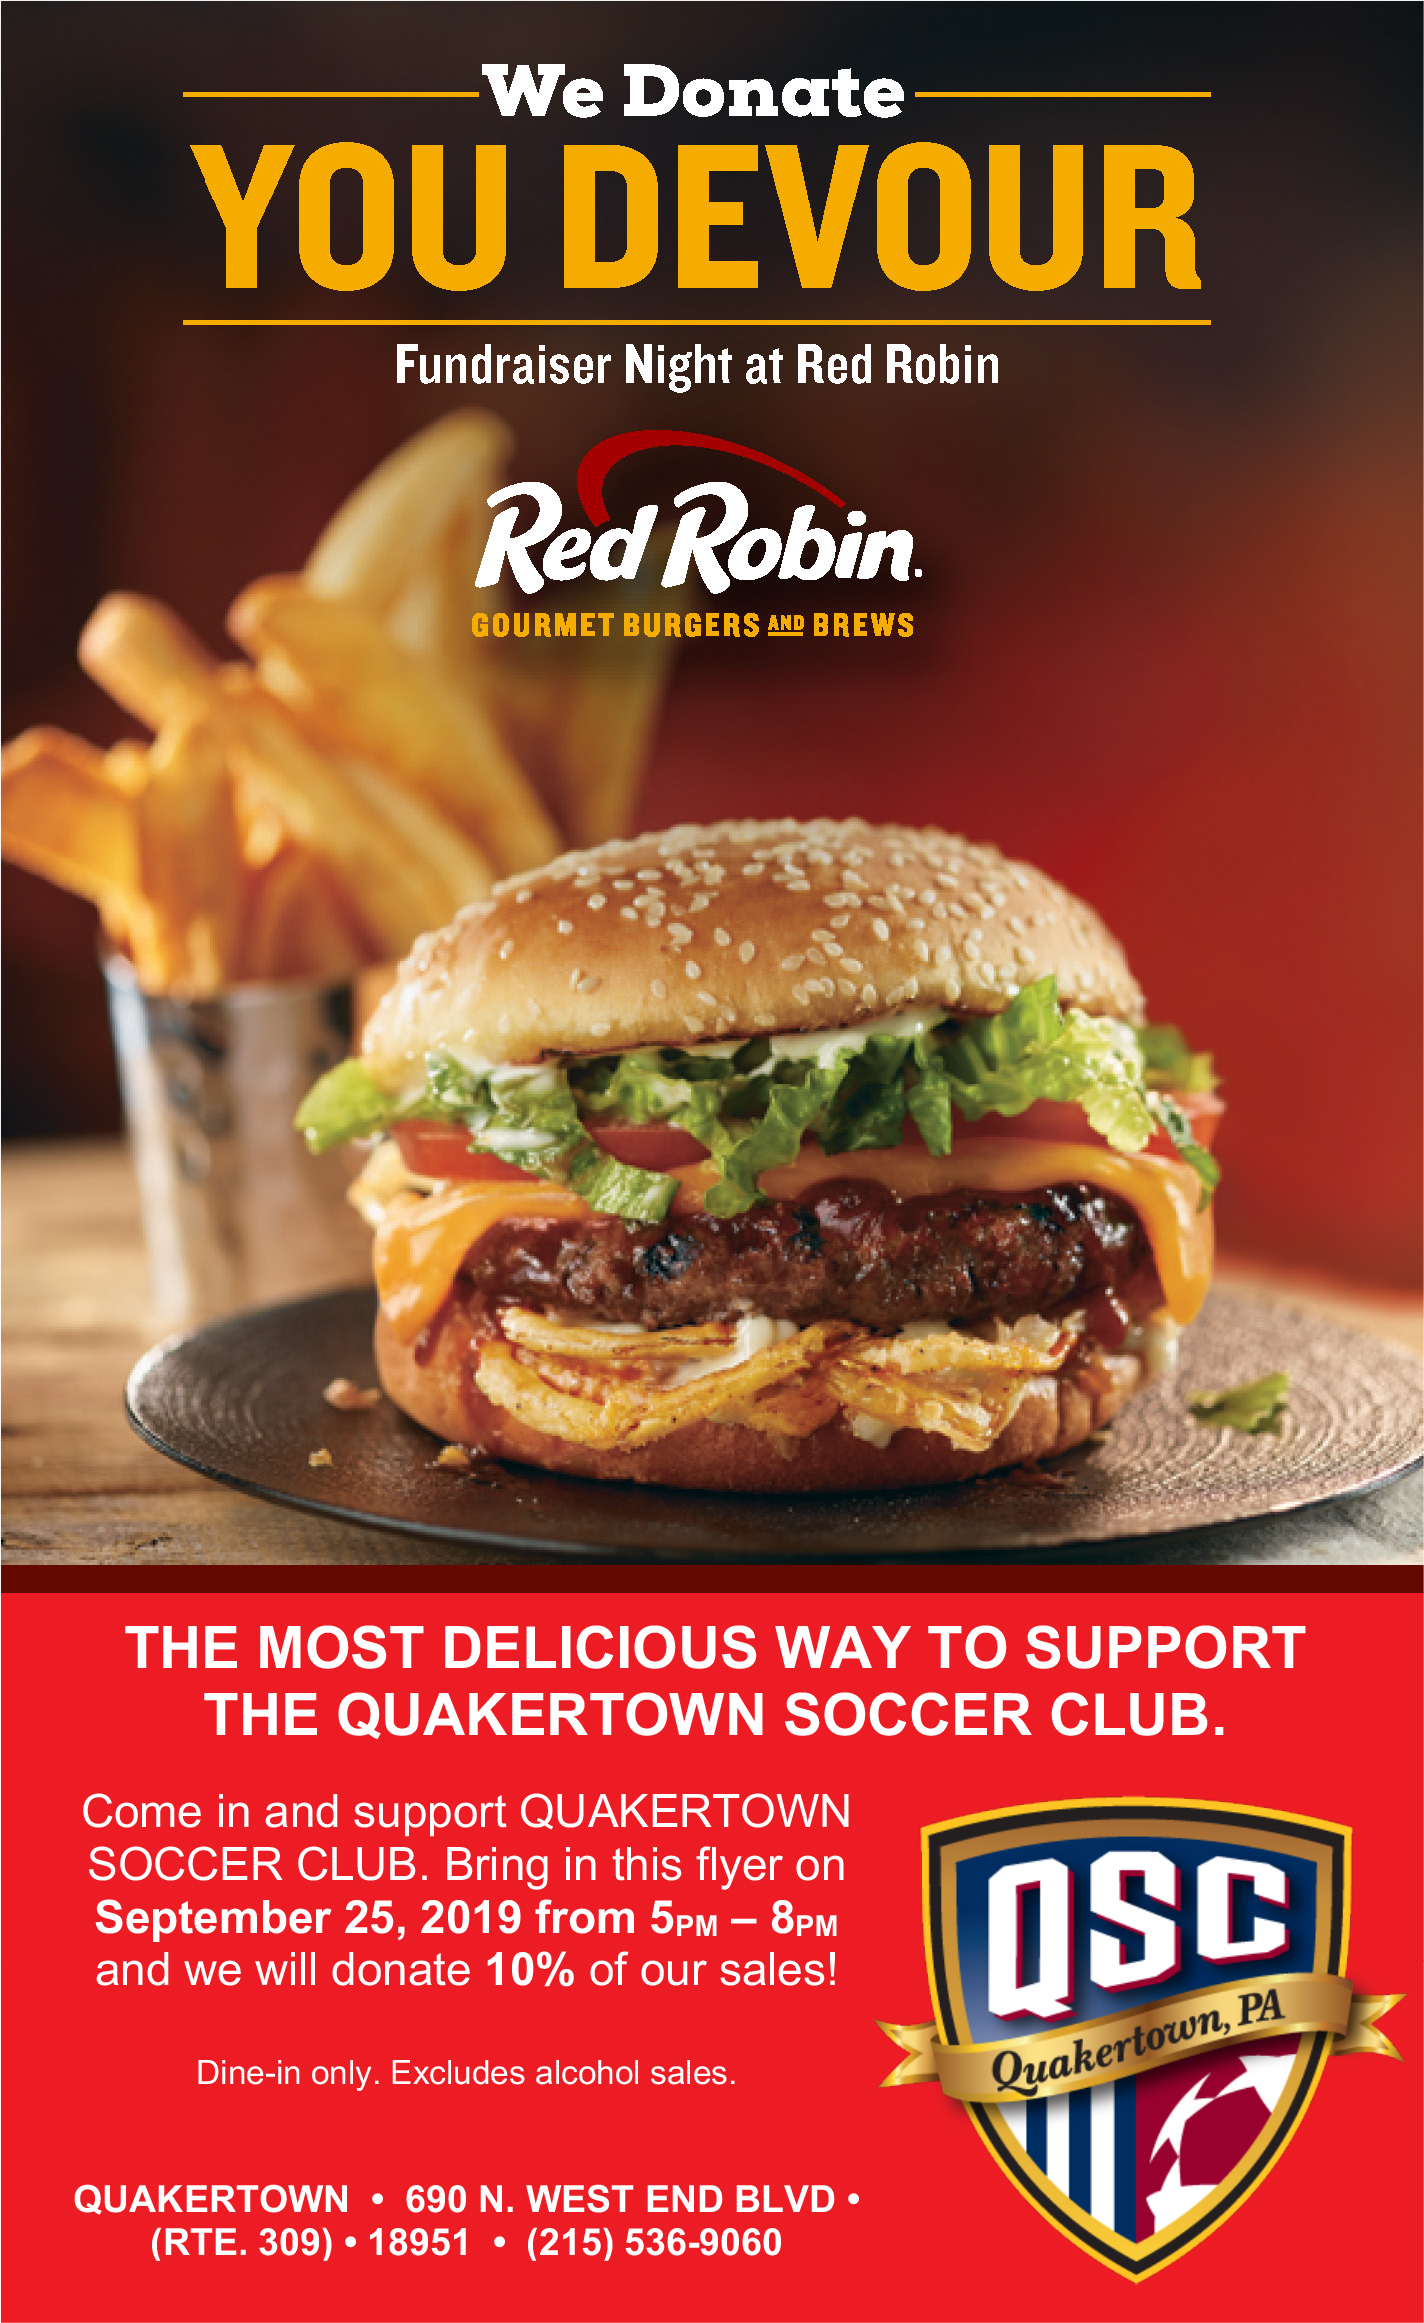 QSC Night at Red Robin - Wednesday 9/25 5-8 PM!!